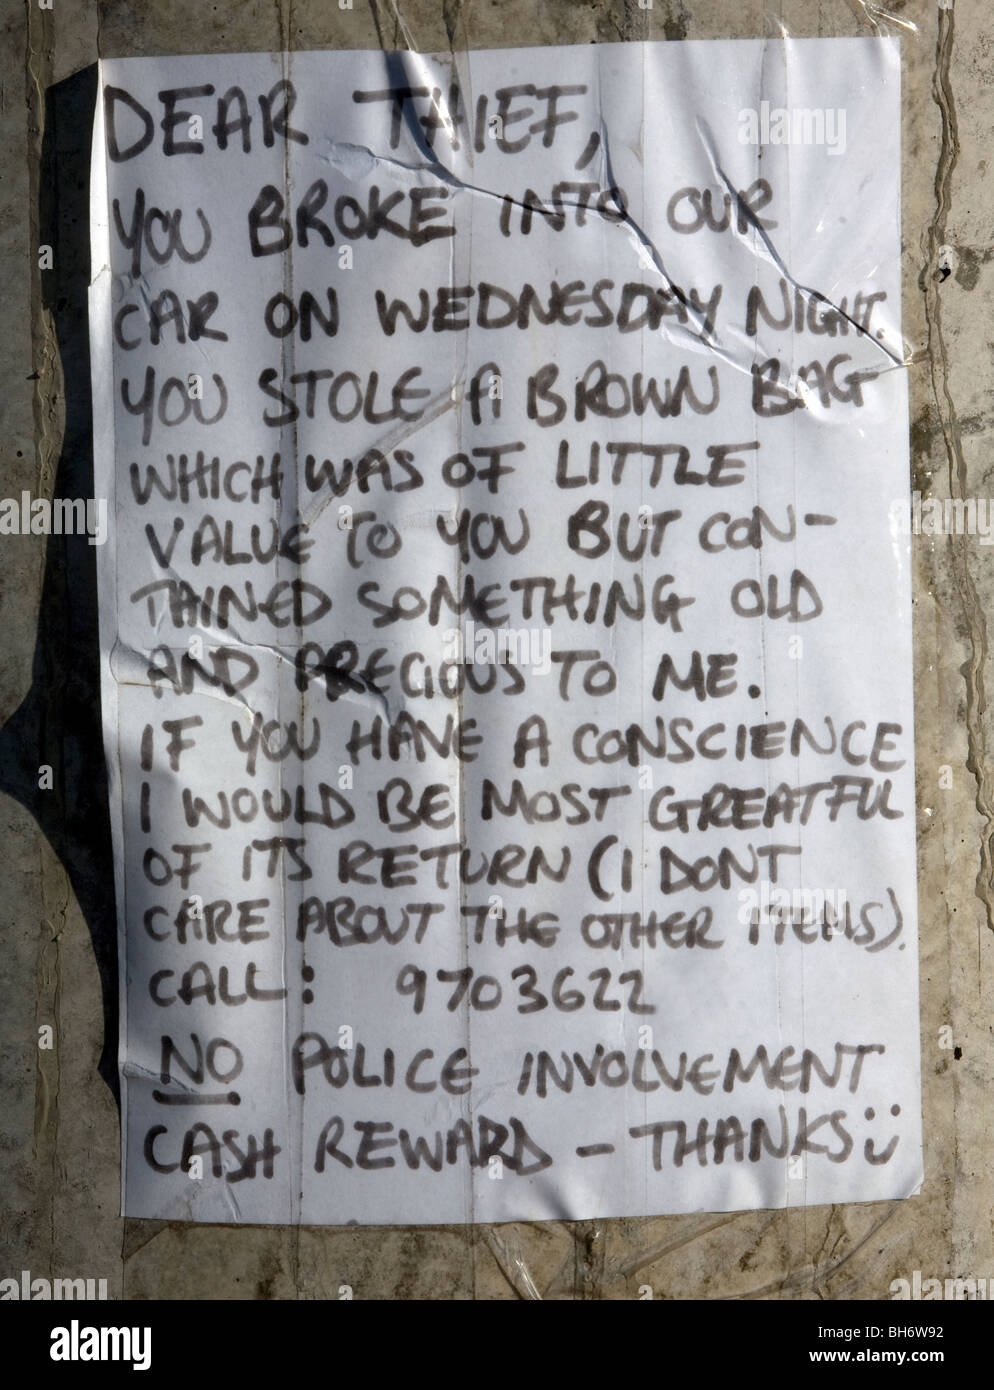 Letter written to thief posted on wall asking for return of property of sentimental value - Stock Image